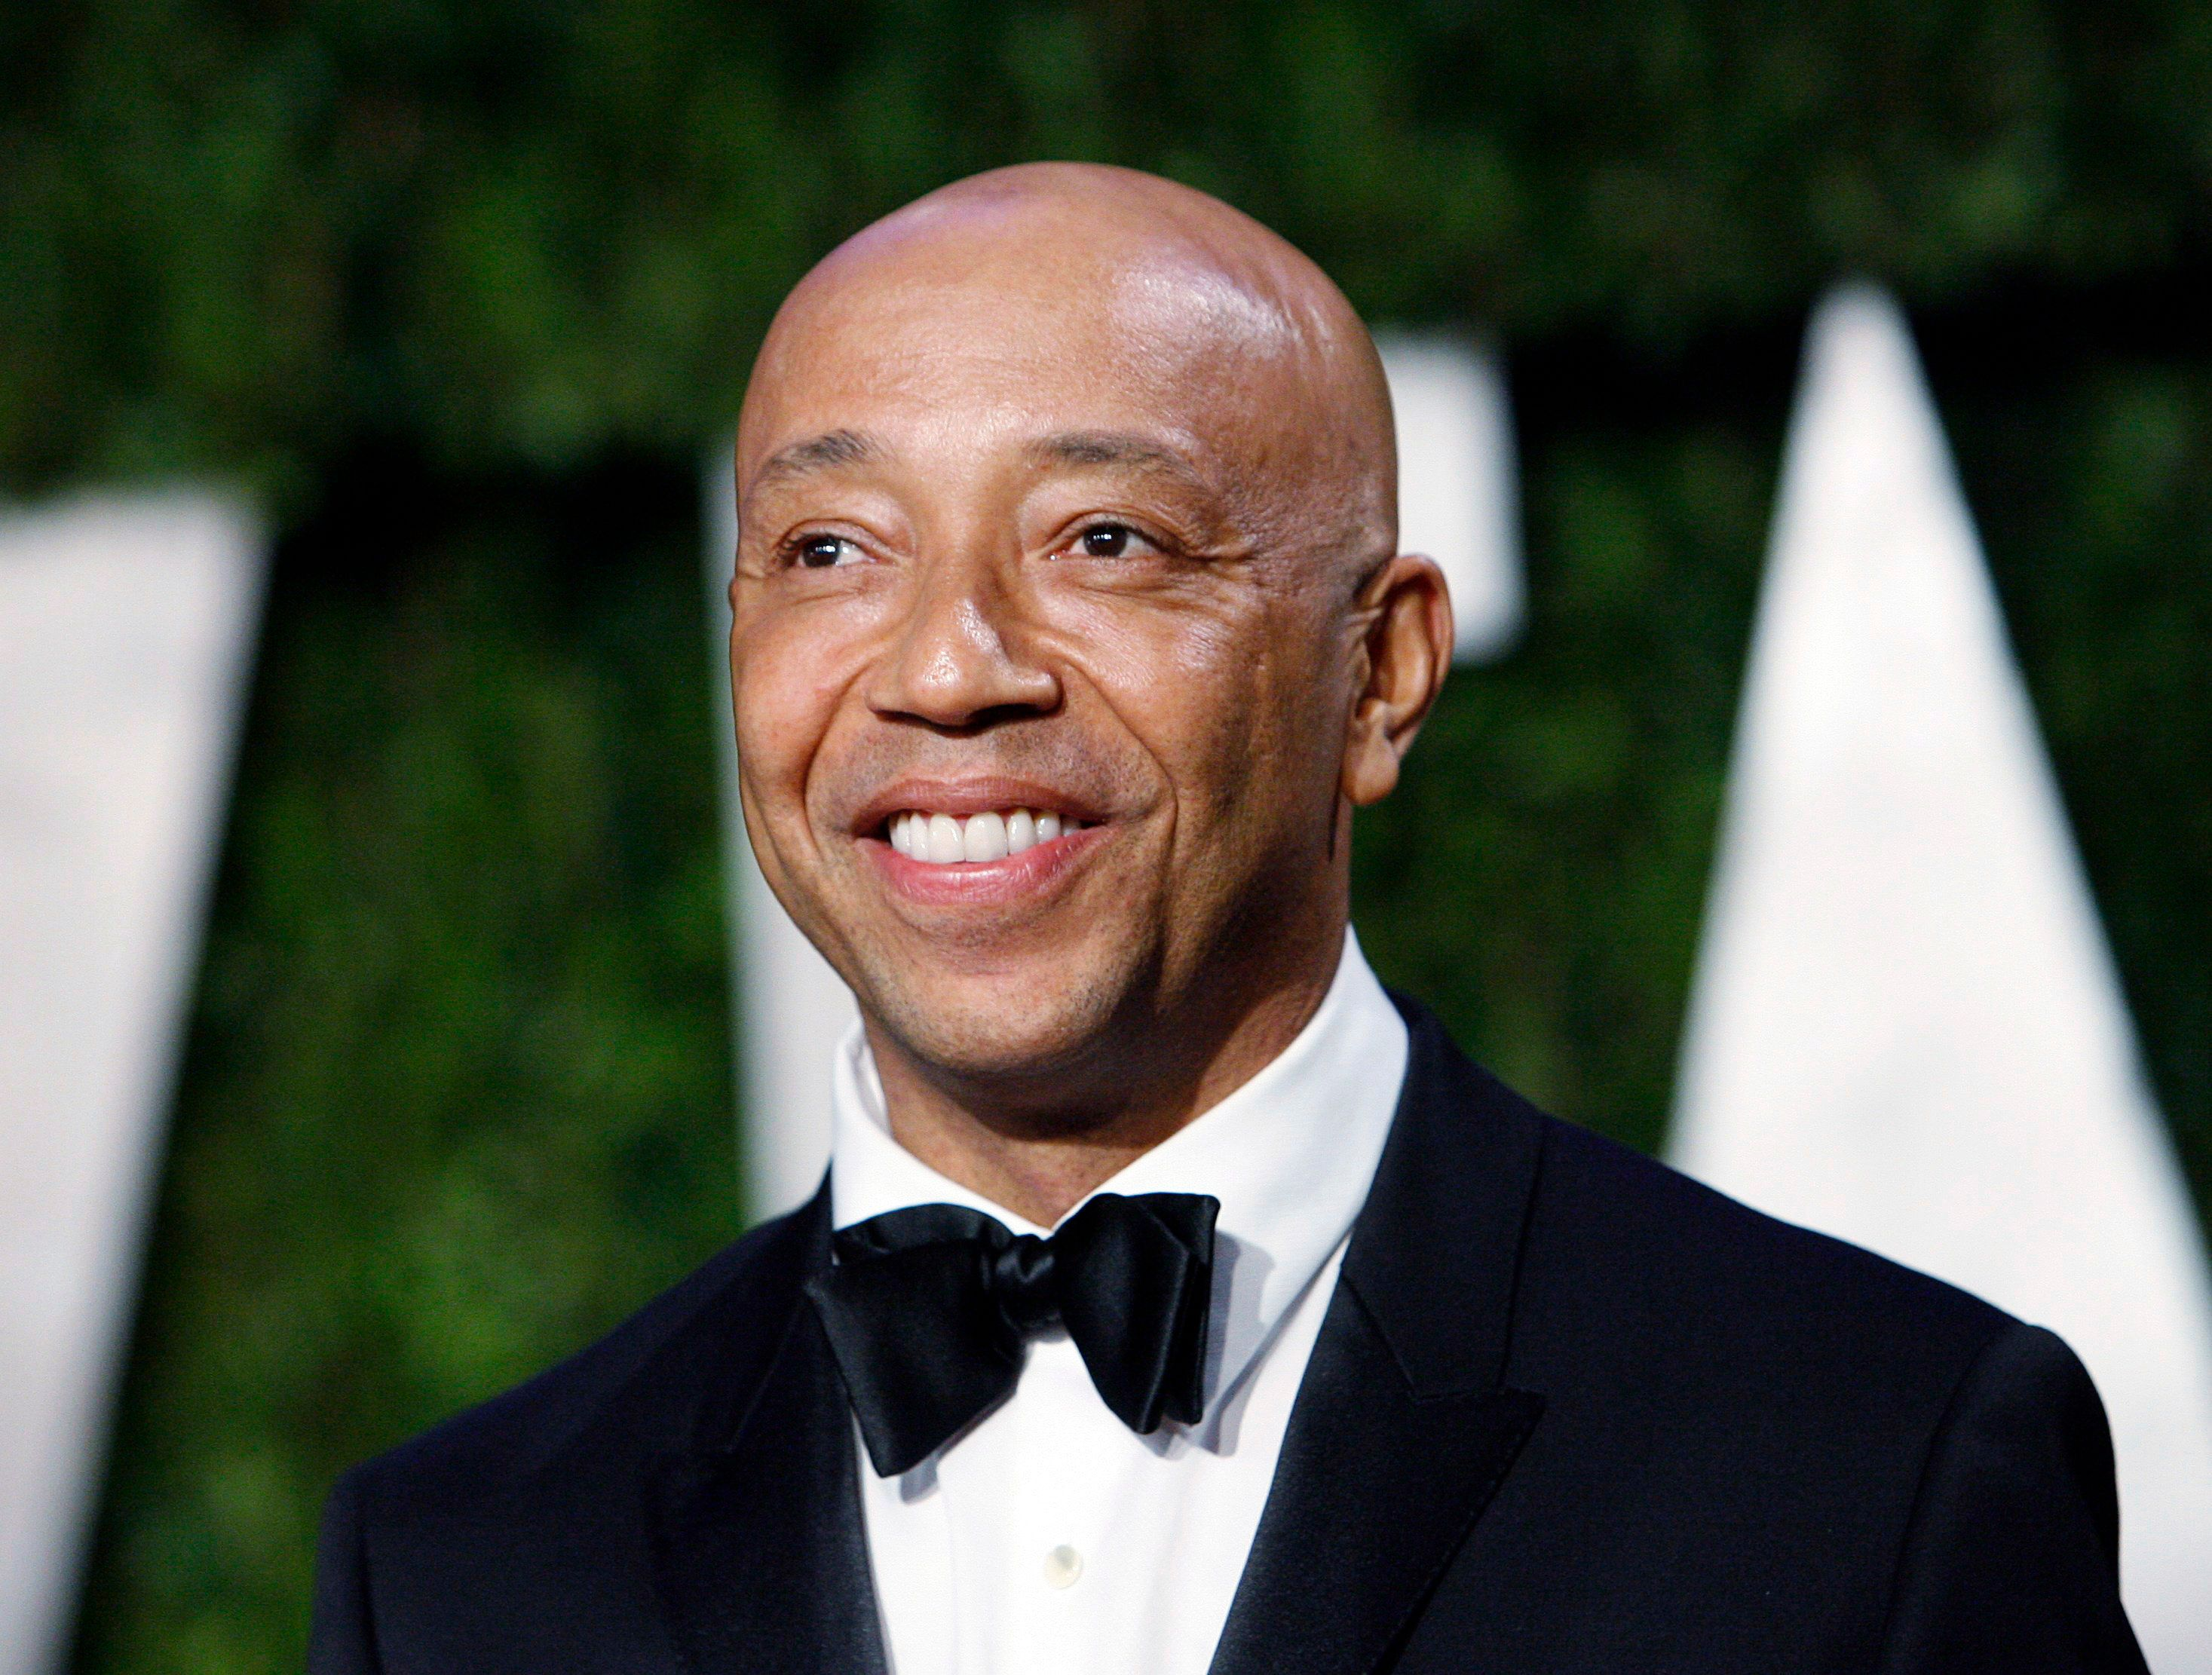 Def Jam co-founder Russell Simmons arrives at the 2010 Vanity Fair Oscar party in West Hollywood, California March 7, 2010. REUTERS/Danny Moloshok  (UNITED STATES)    (OSCARS-PARTY - Tags: ENTERTAINMENT)